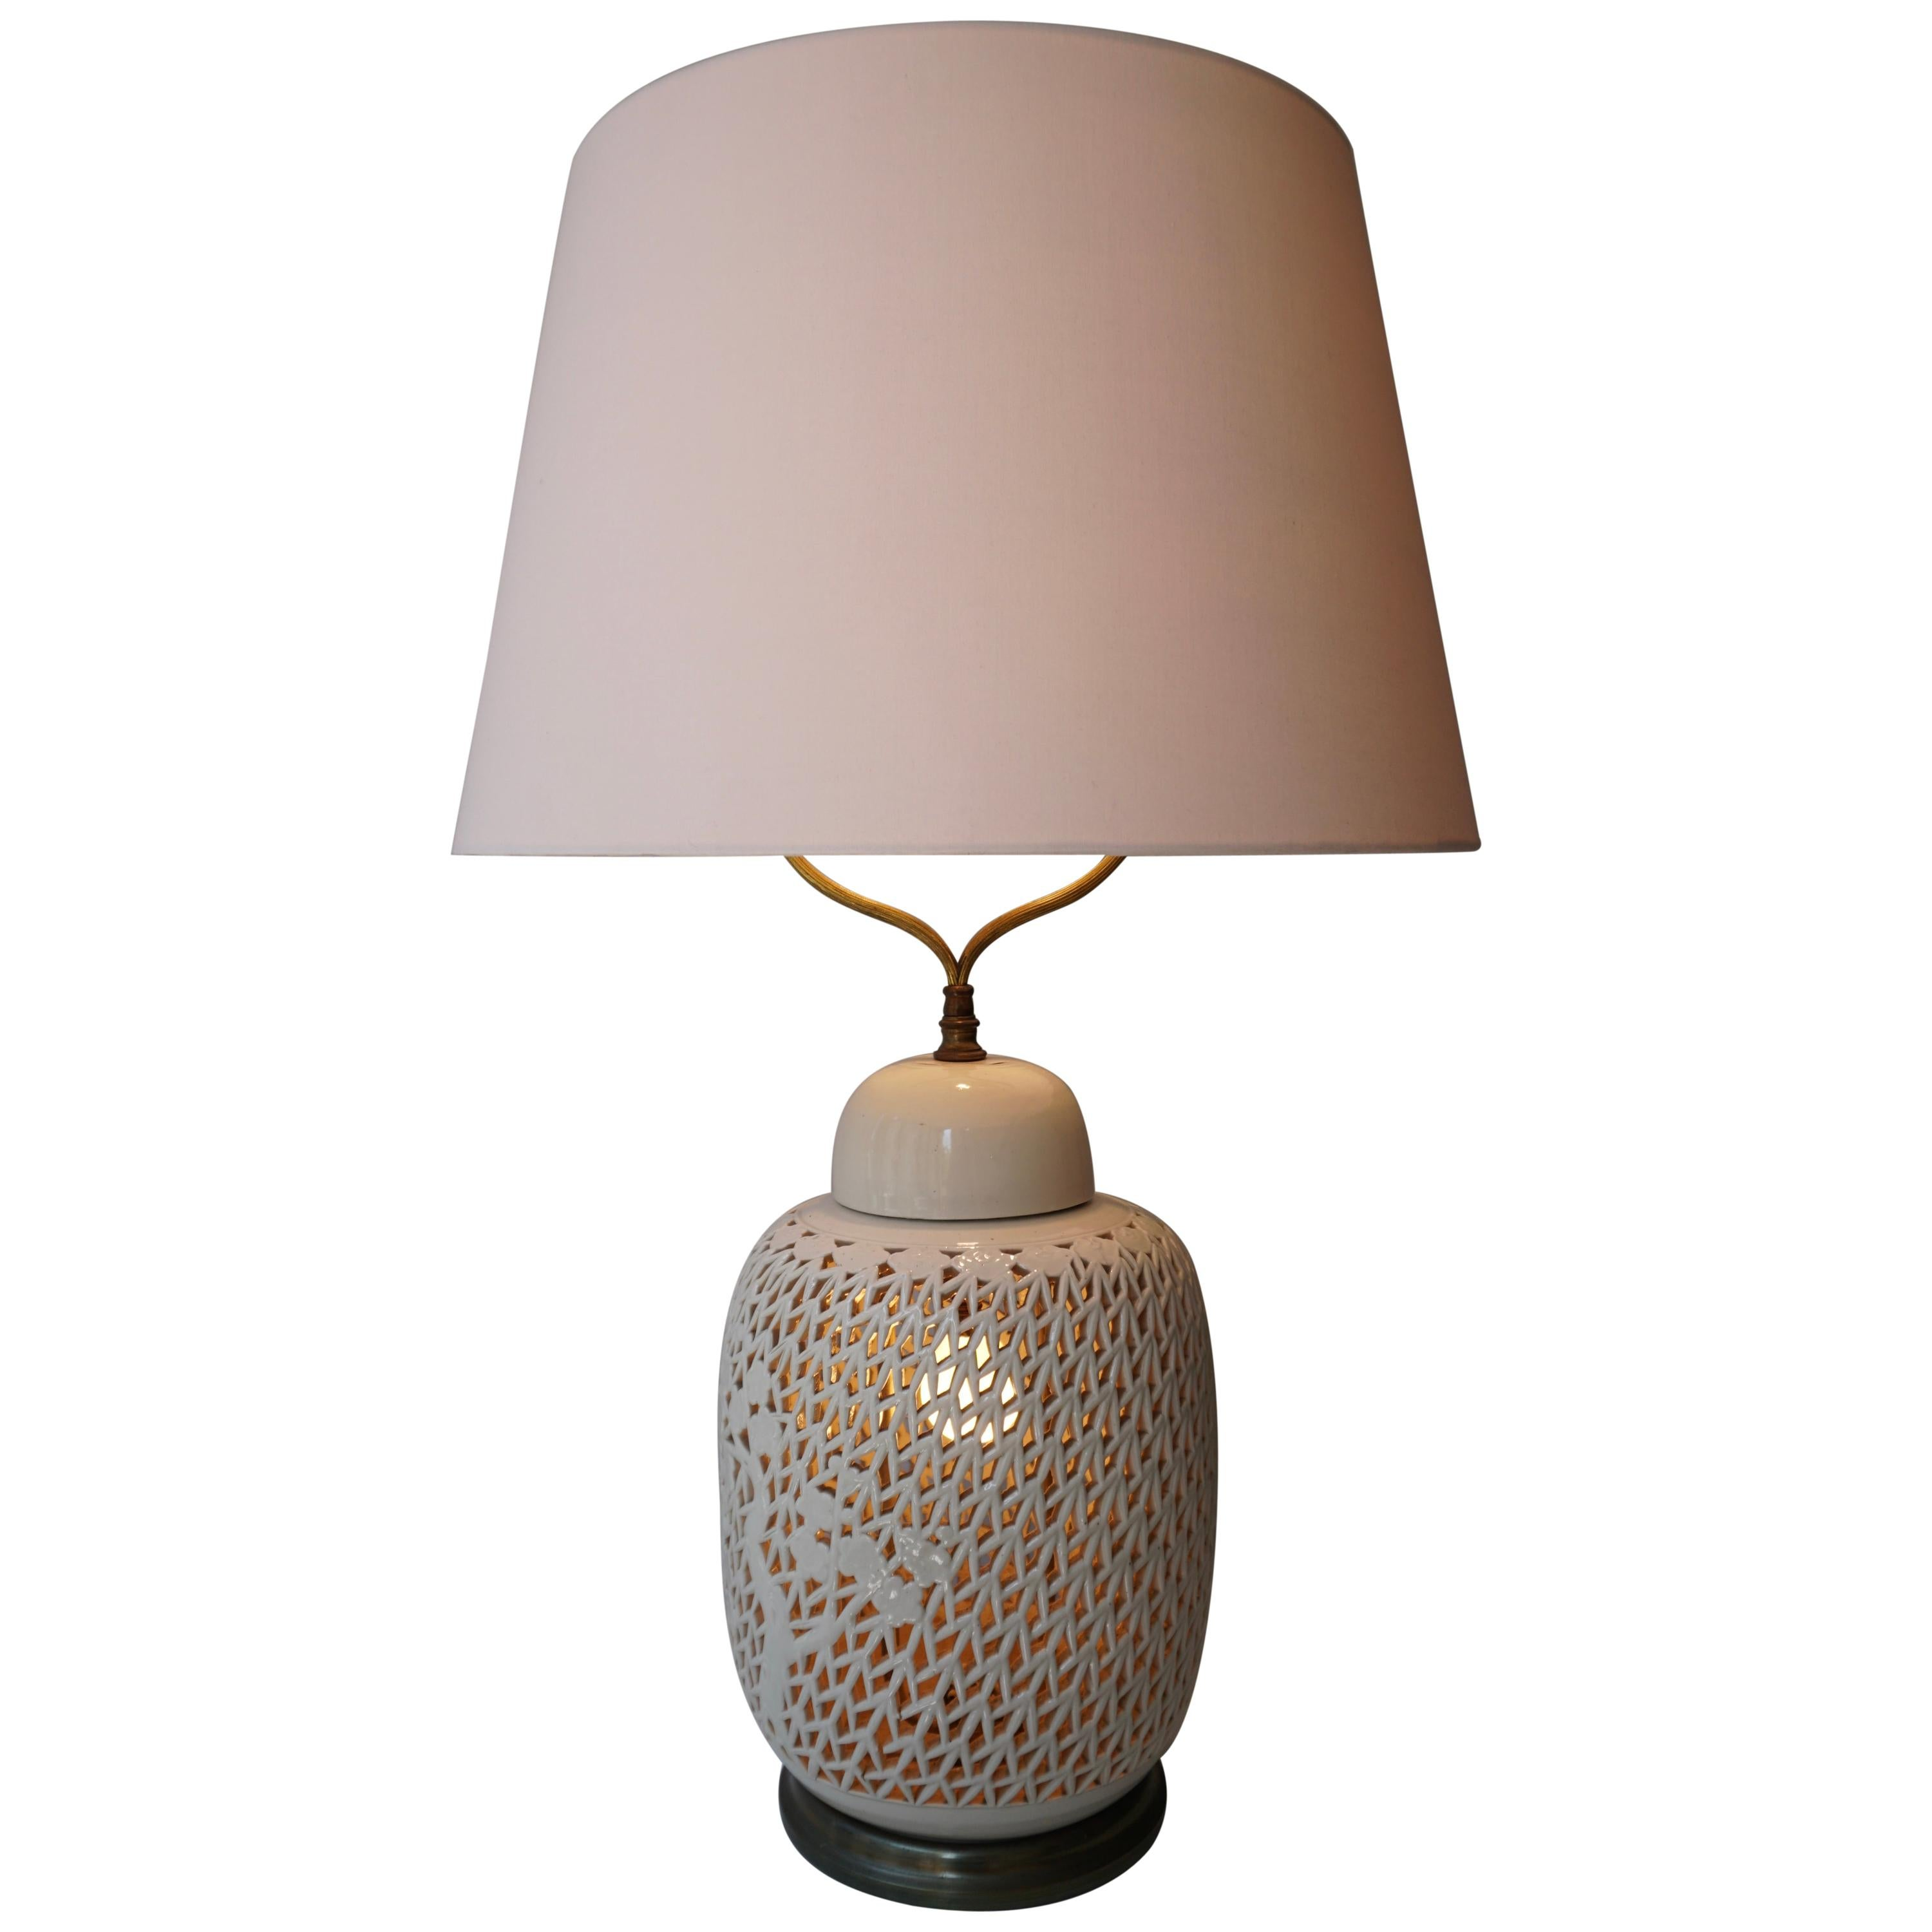 Large Reticulated Porcelain Blanc De Chine Table Lamp